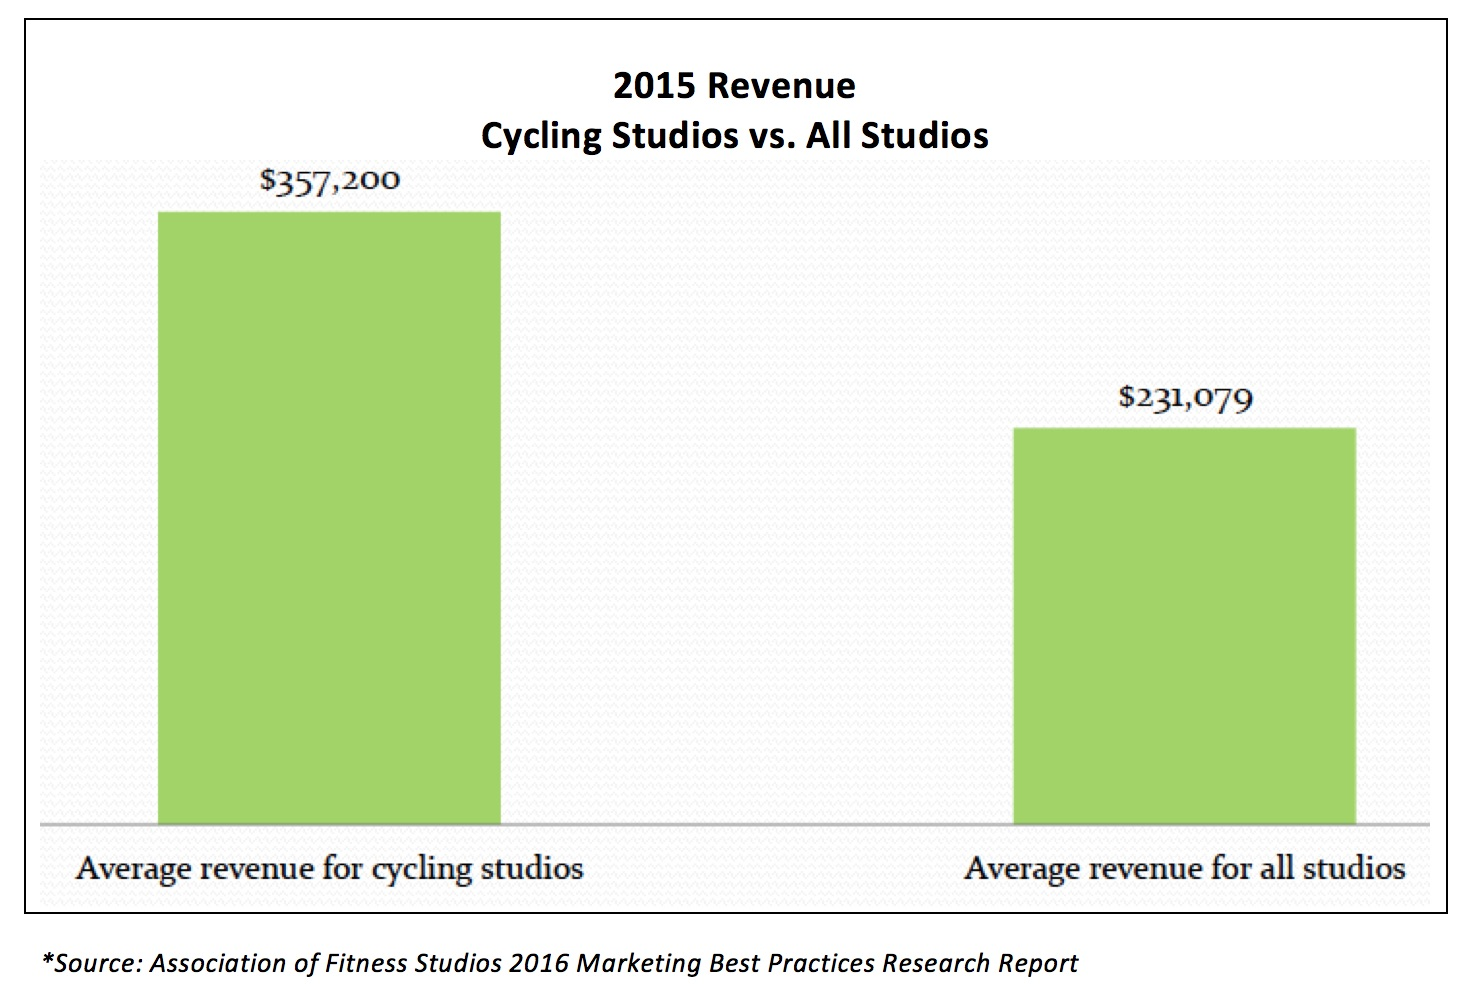 Latest Research: Cycling Studios Generate 55% More Revenue Than